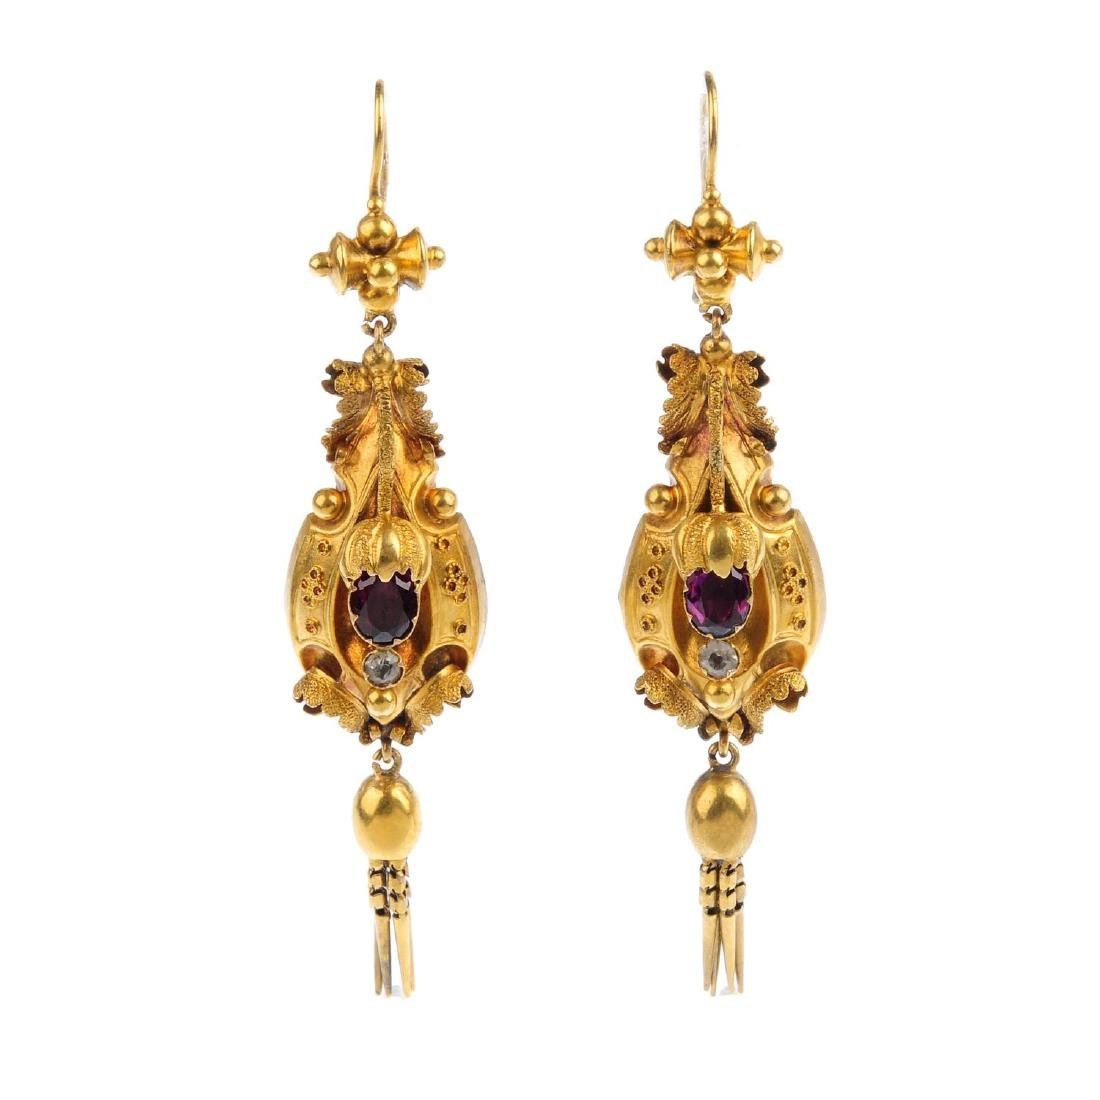 A pair of mid Victorian gold gem-set earrings. Each